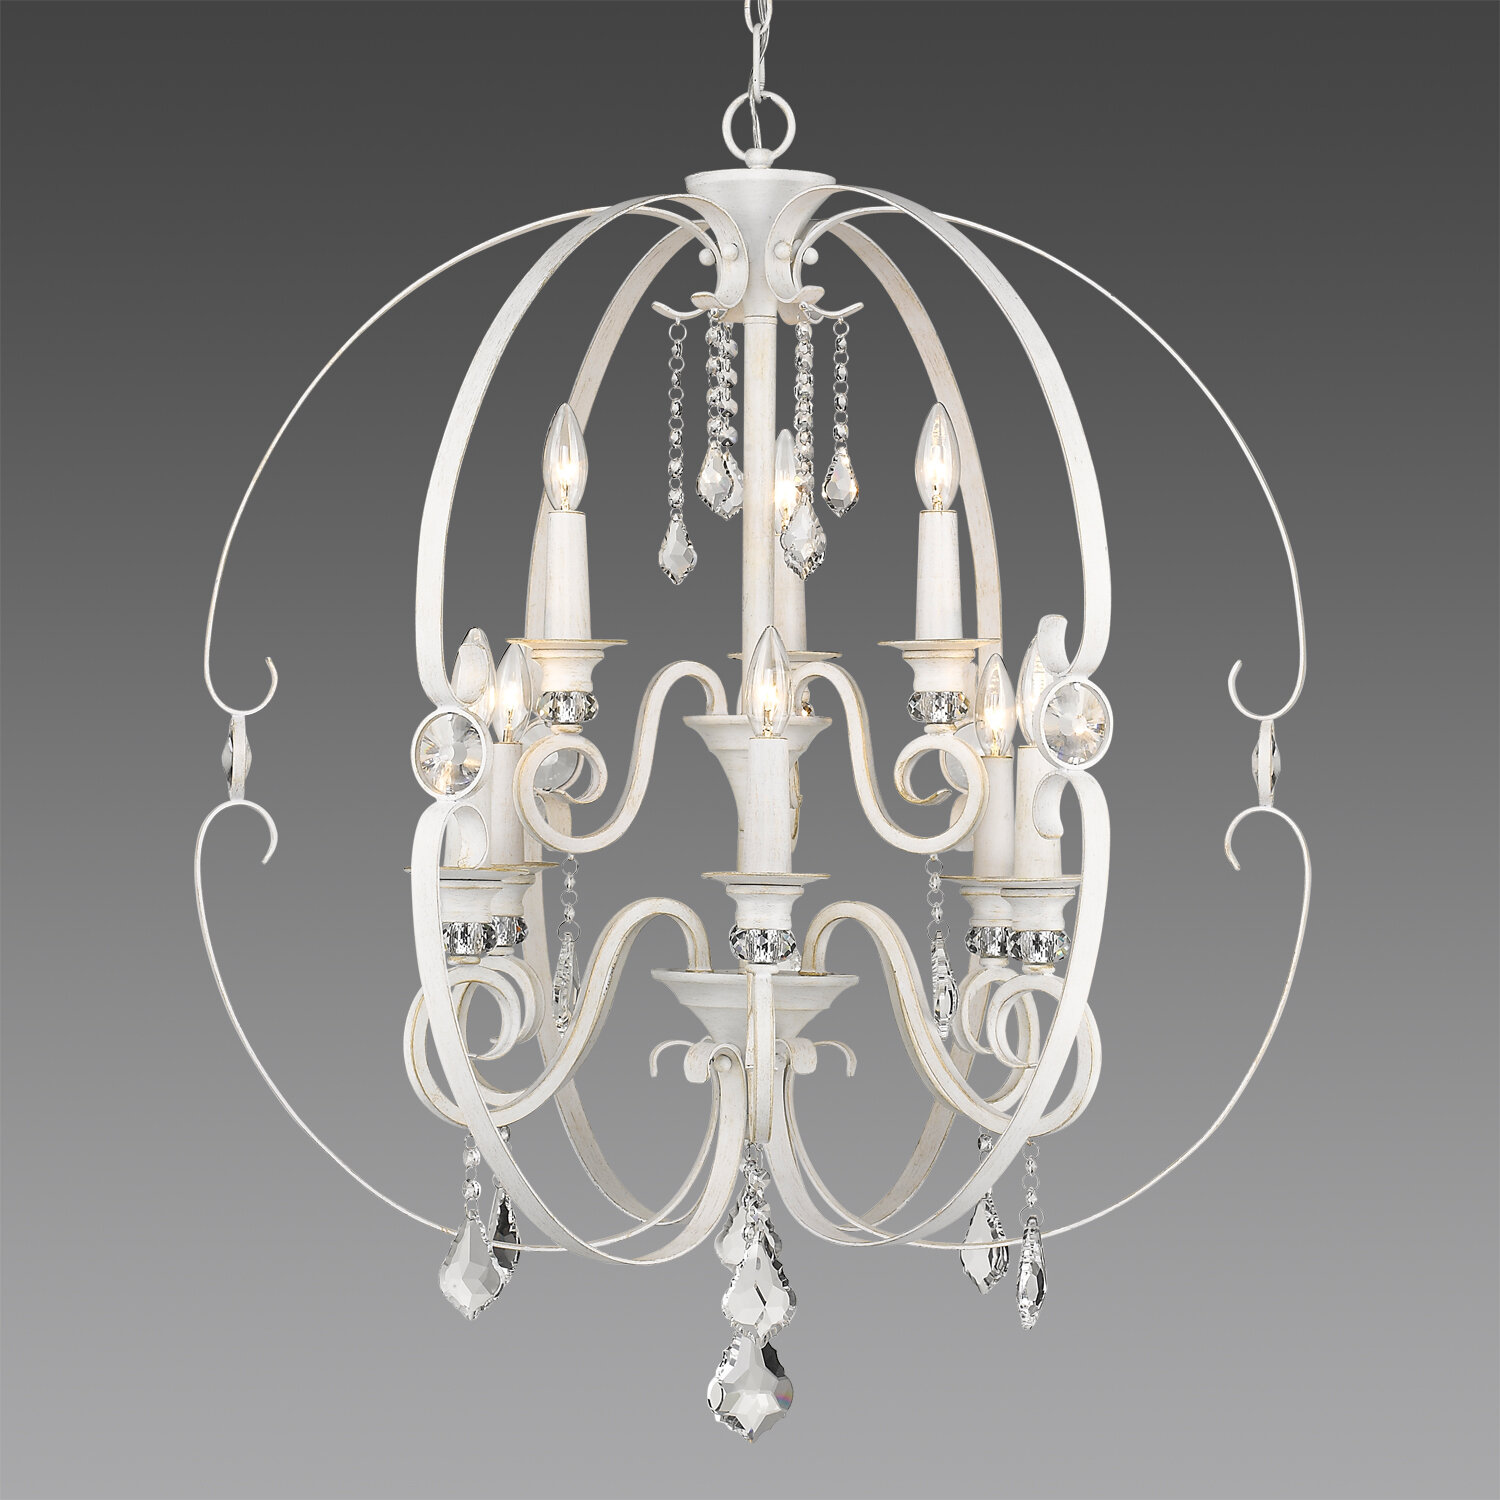 Hardouin 9 Light Candle Style Tiered